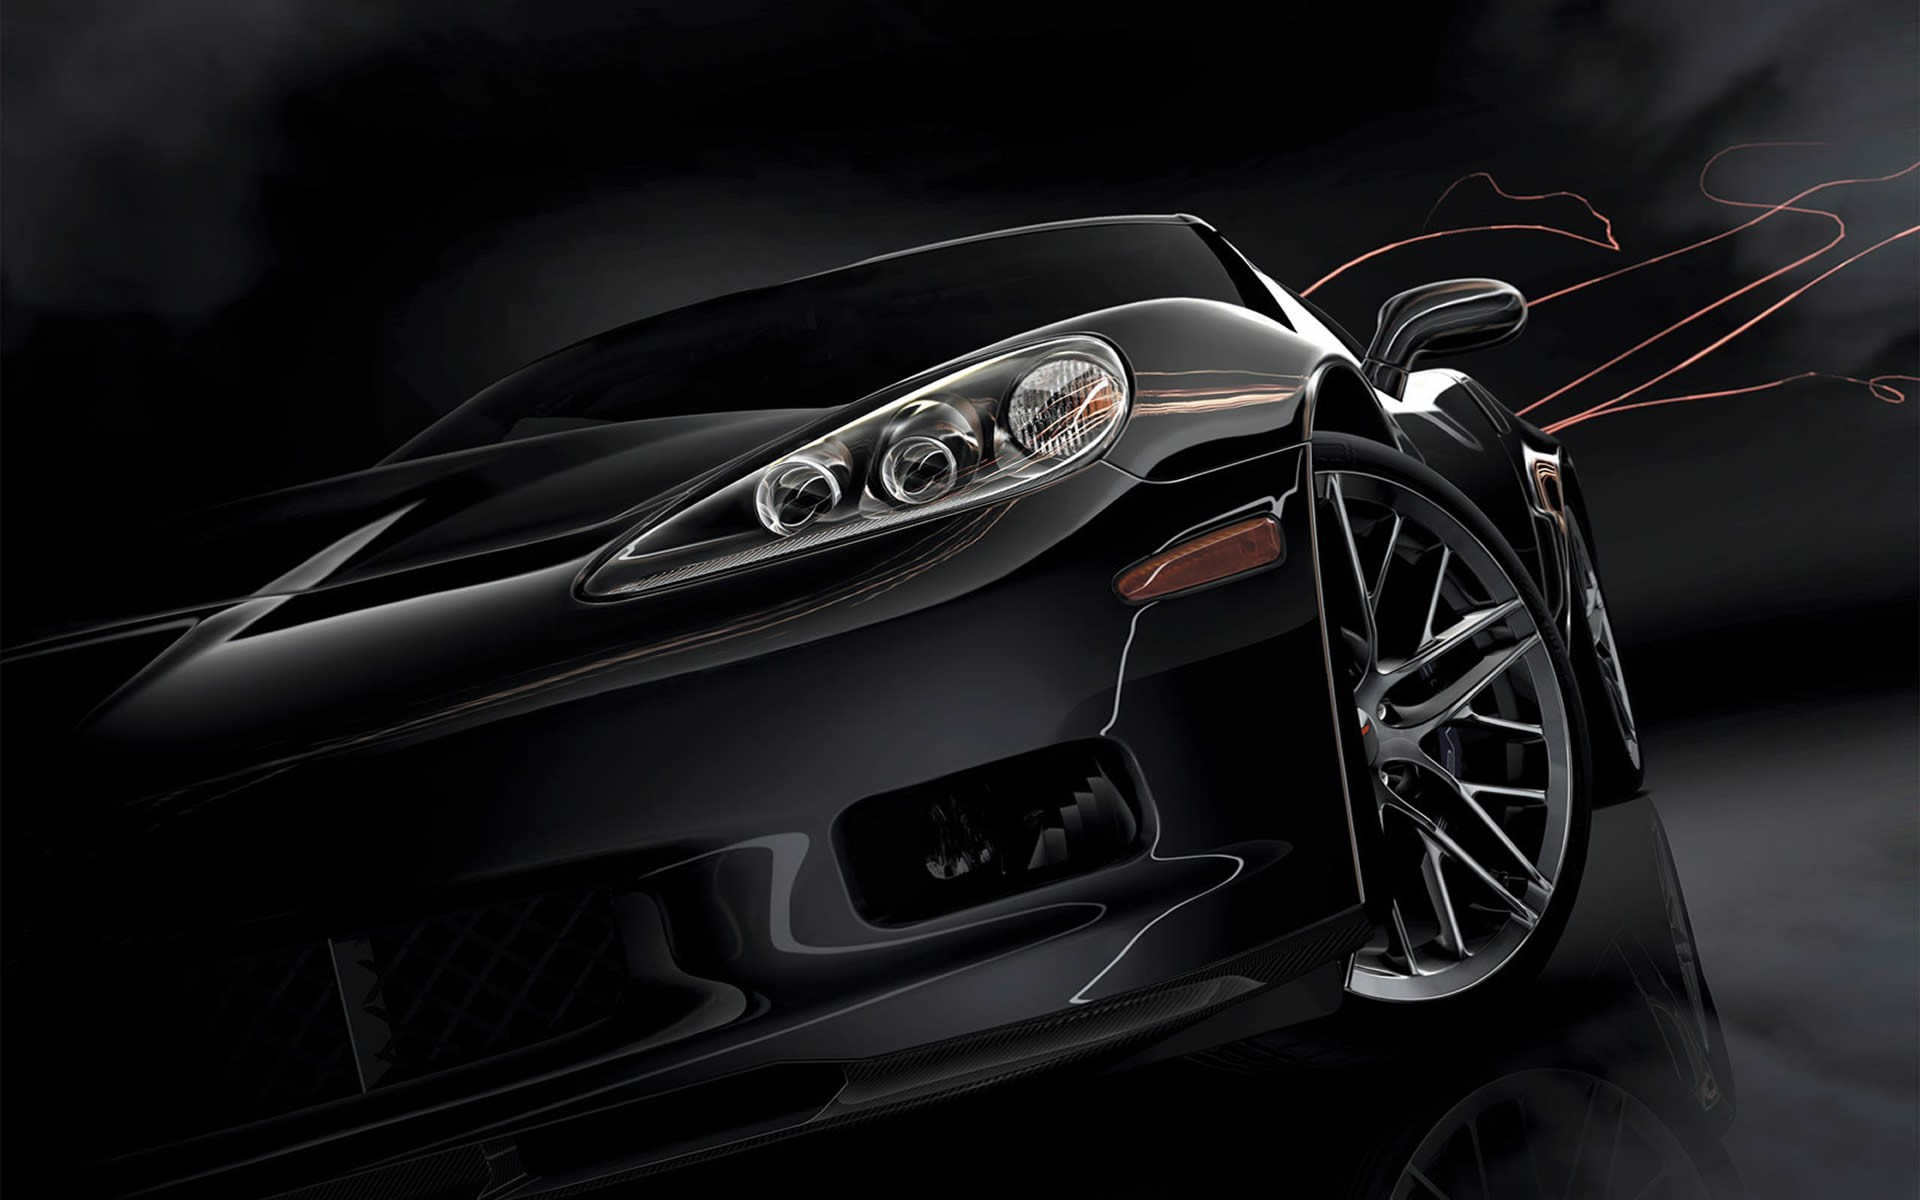 1920x1200 Car Black Background Desktop Widescreen Wallpapers 34114